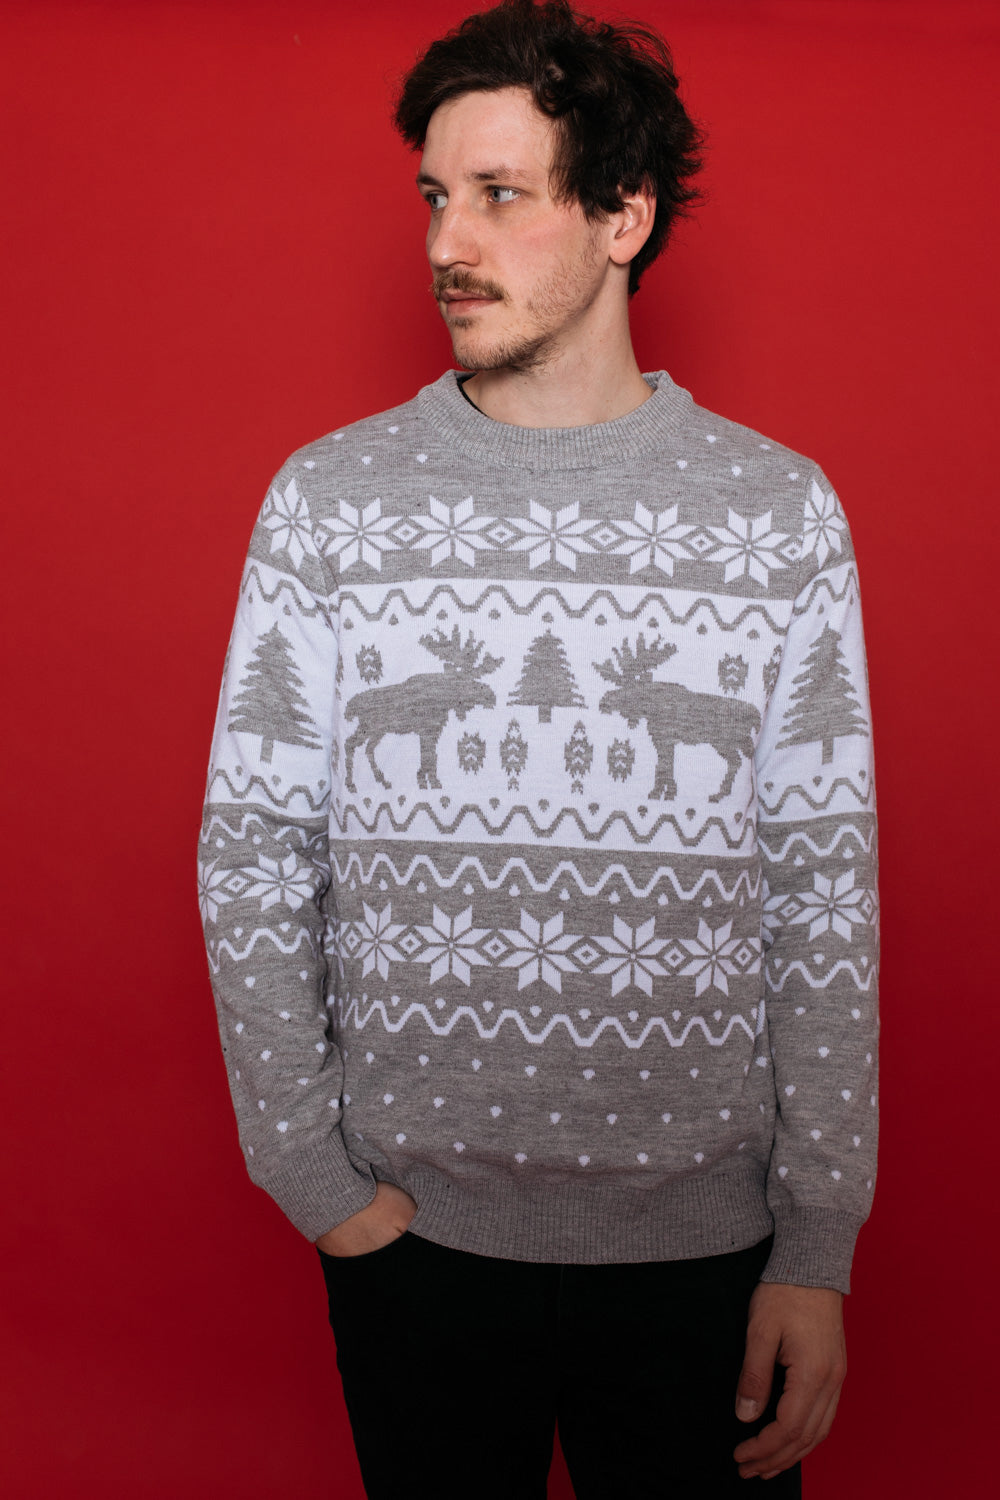 Merry Moose Sweater